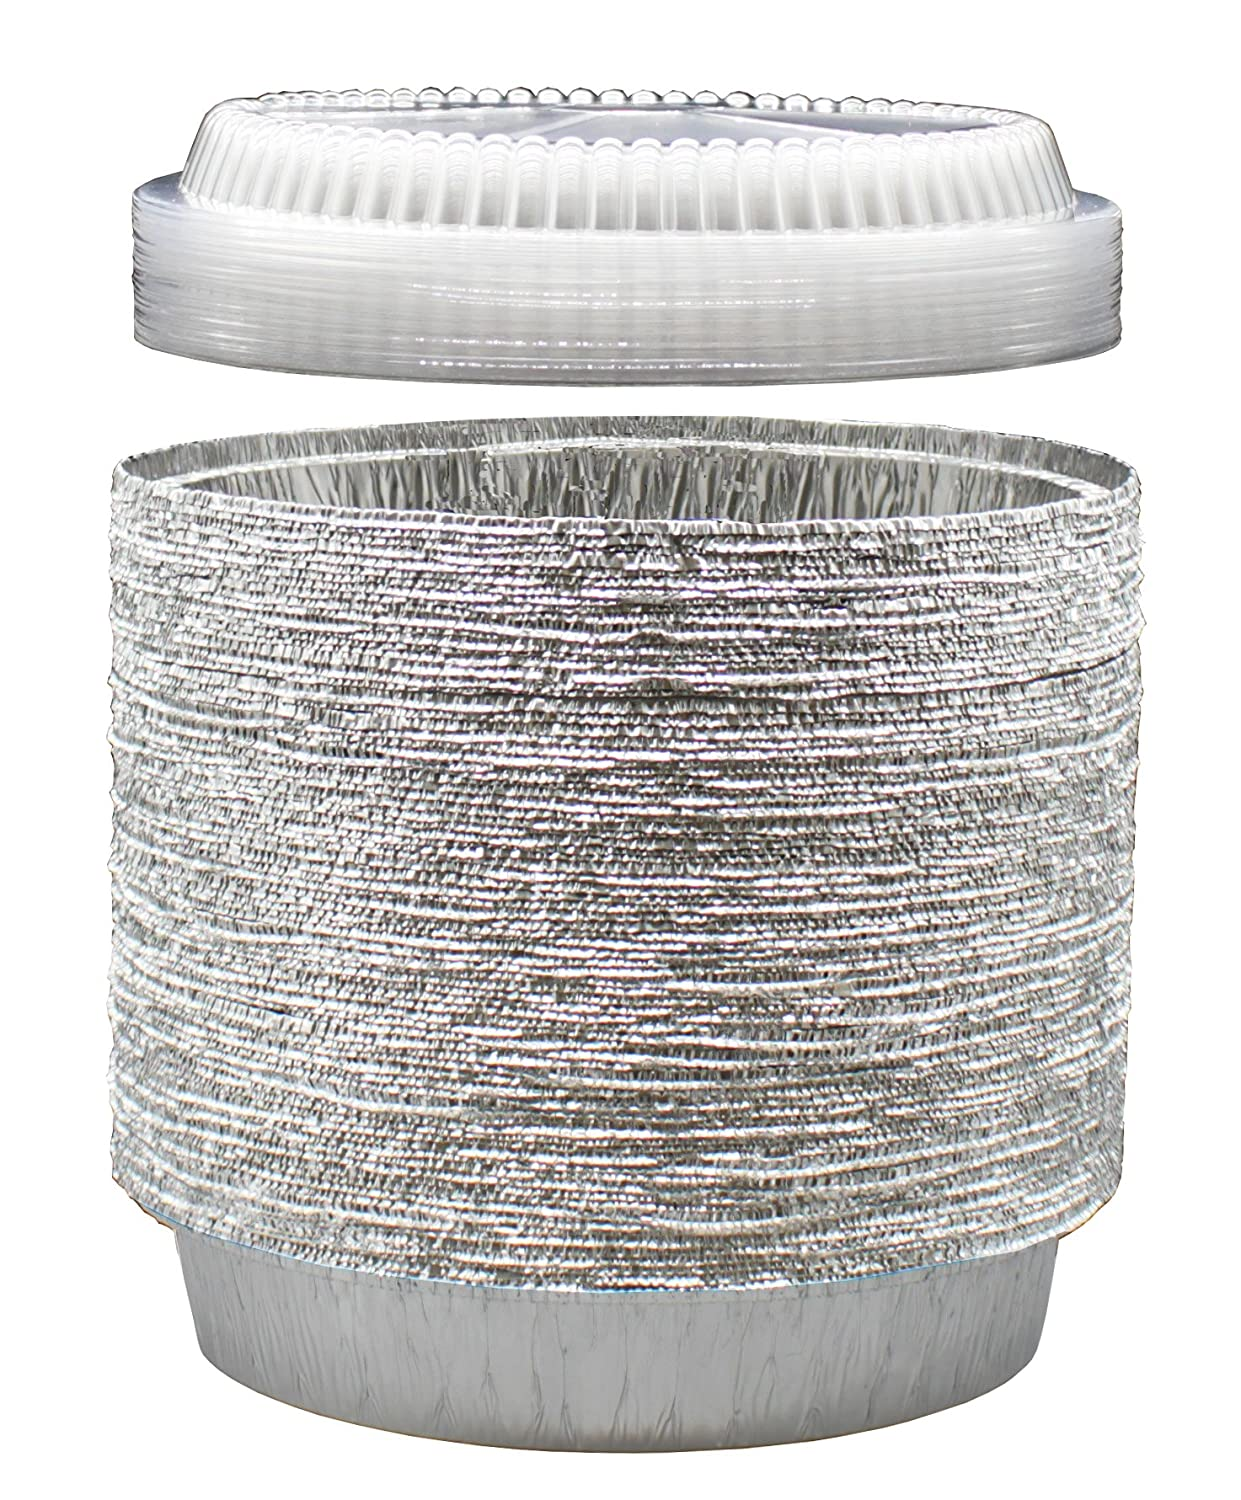 9Inch Round Tin Foil Pans with Clear Plastic Lids- Freezer & Oven Safe Disposable Aluminum - For Baking, Cooking, Storage & Reheating - Pack of40 - By MontoPack